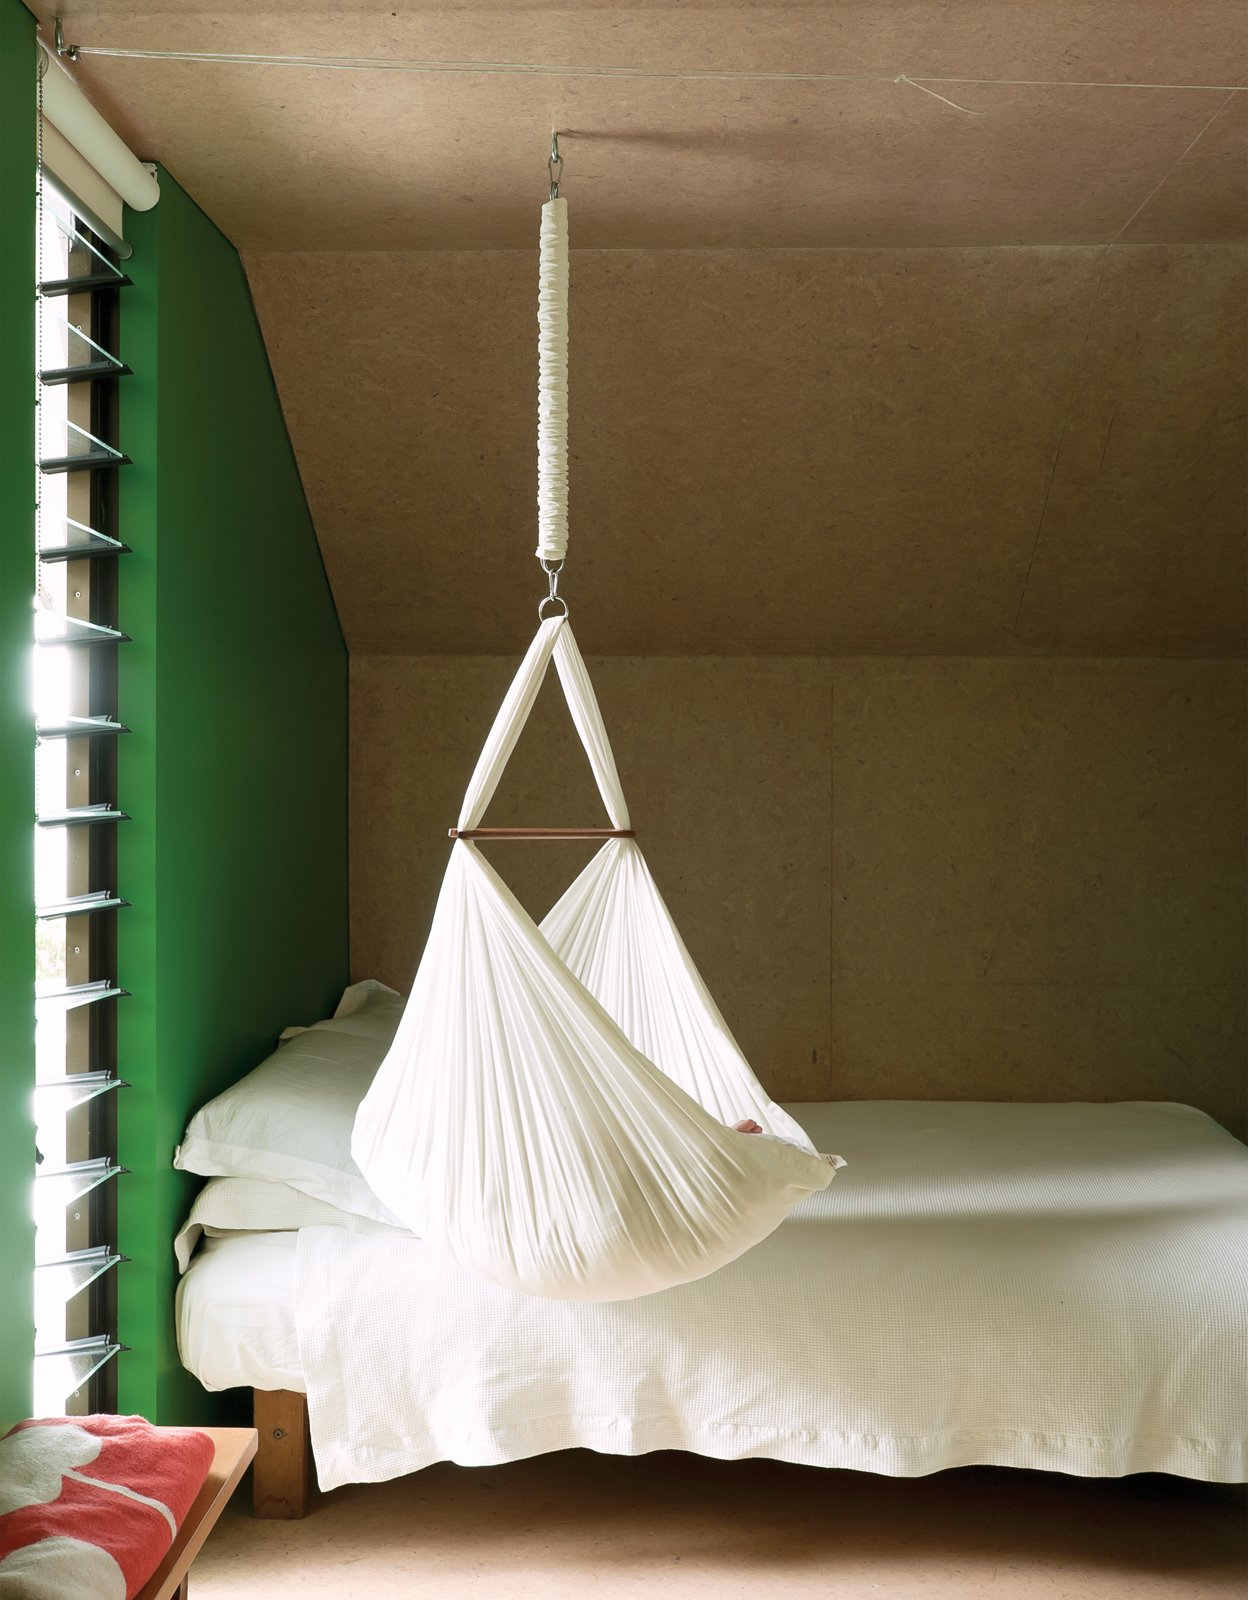 For now, one-year-old Awa is small enough to sleep in the hammock that hangs from the ceiling. Tagged: Bedroom and Bed.  Bedrooms by Dwell from Make Your Parents Happy by Building Them a House